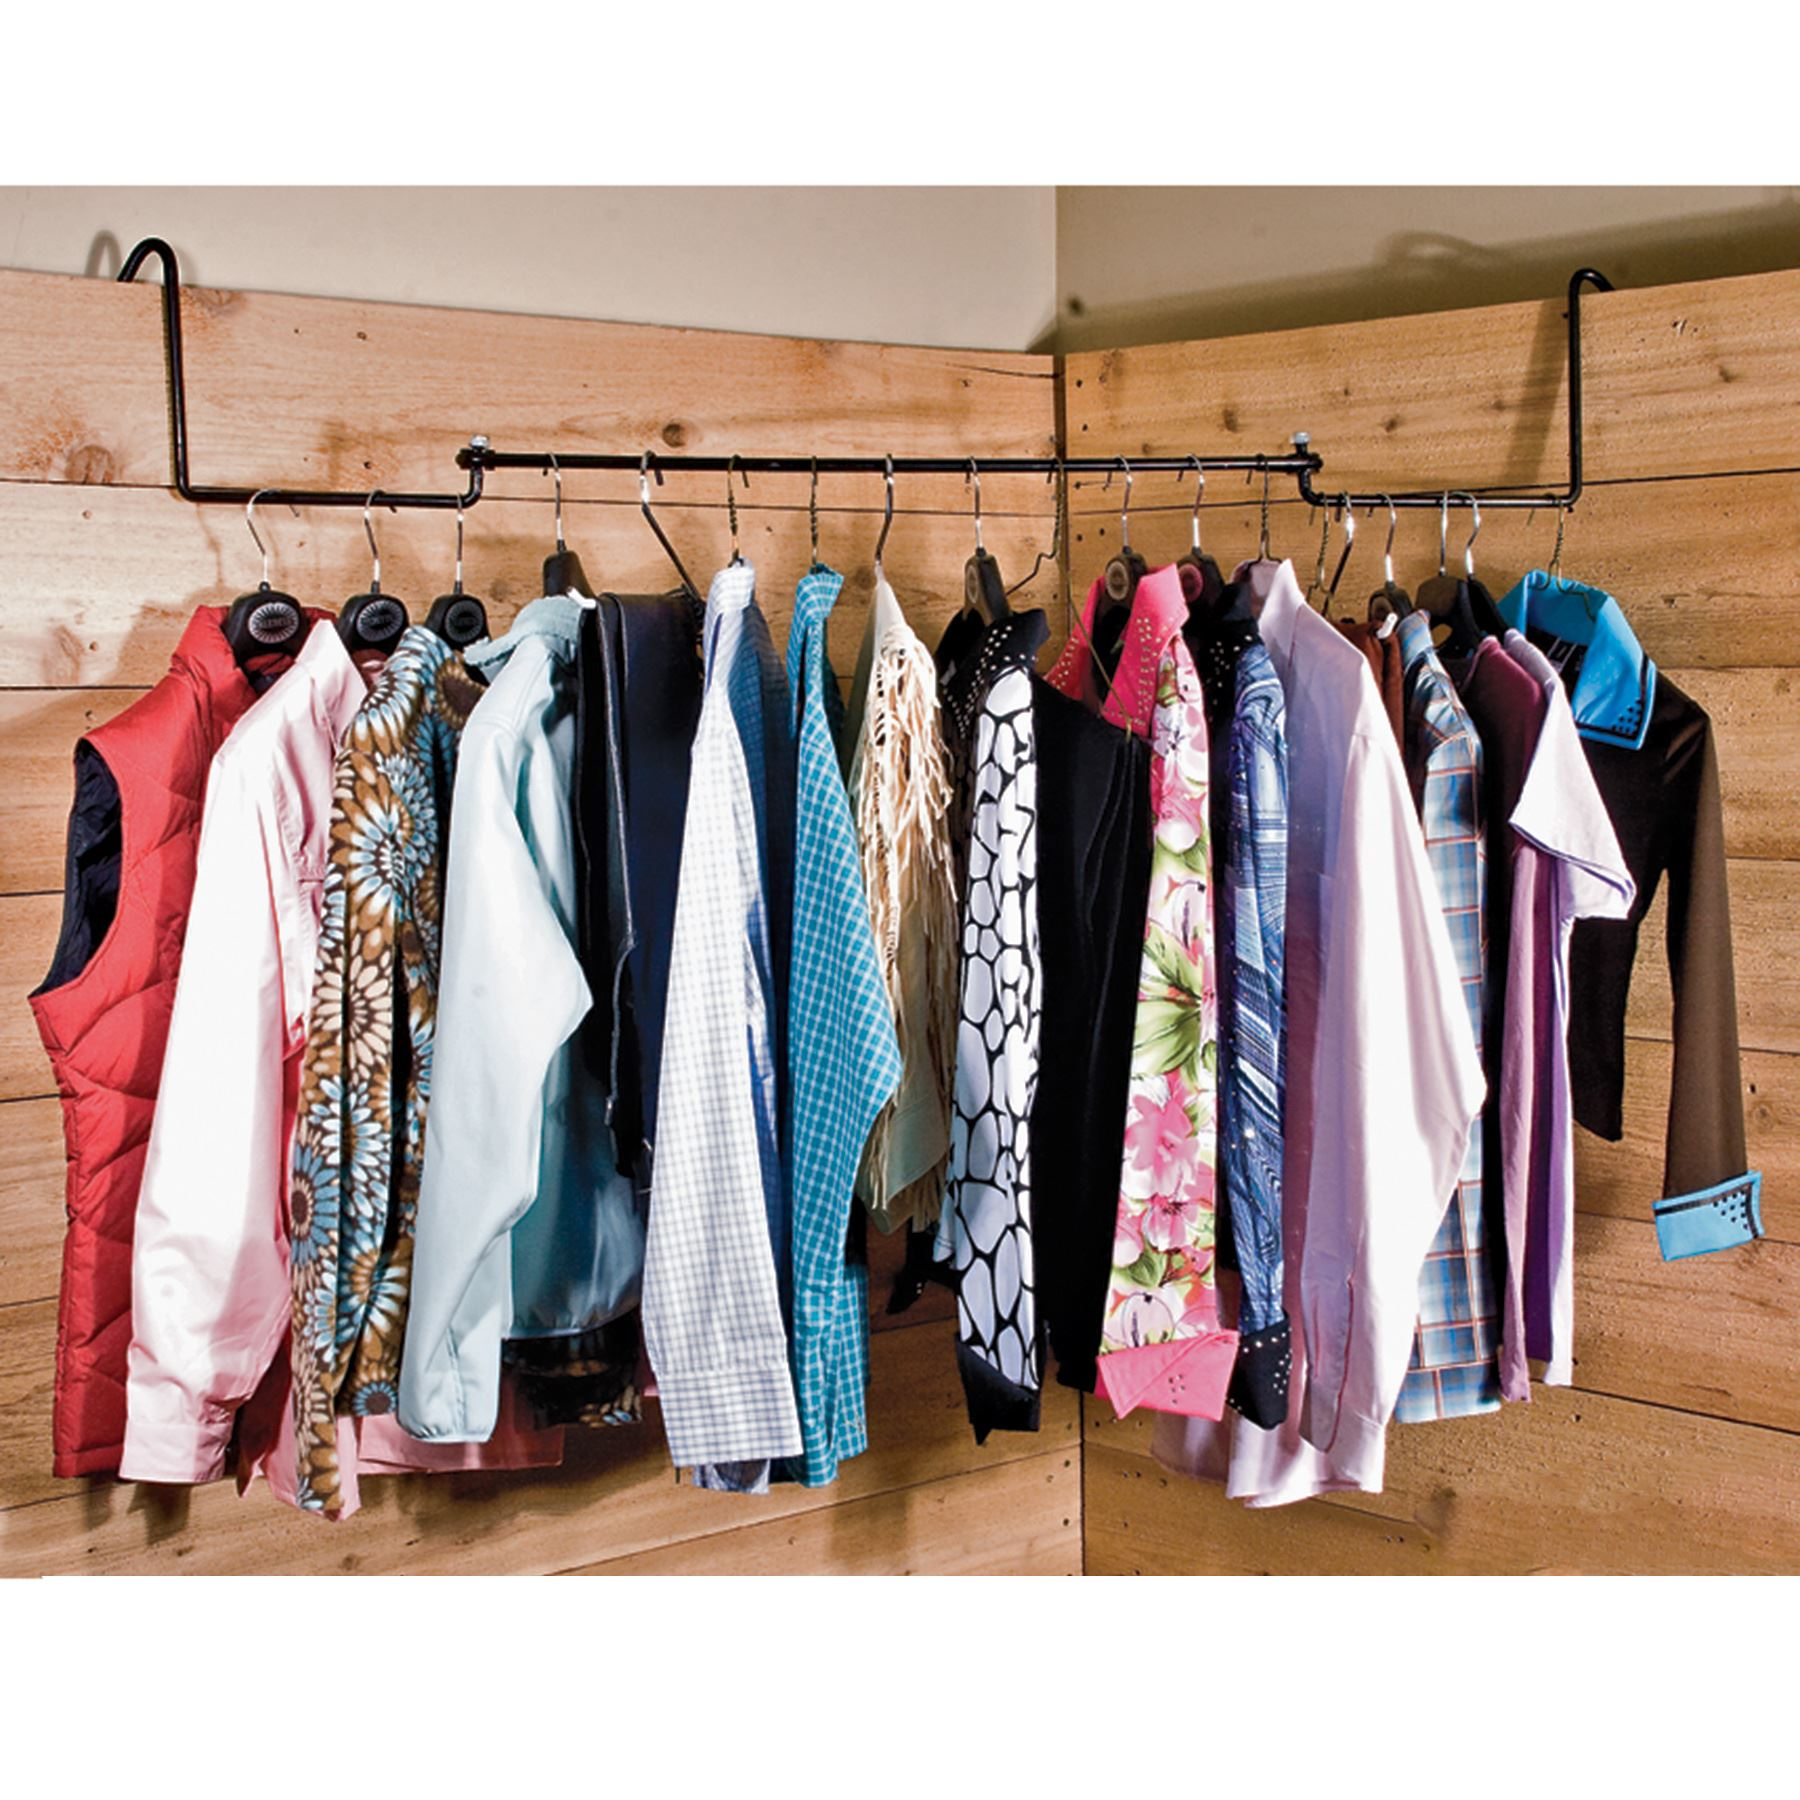 floor shop buy rack clothing pic alibaba for garment clothes shelves the t on price dedicated m store in display com item guide hanging wedding room cheap